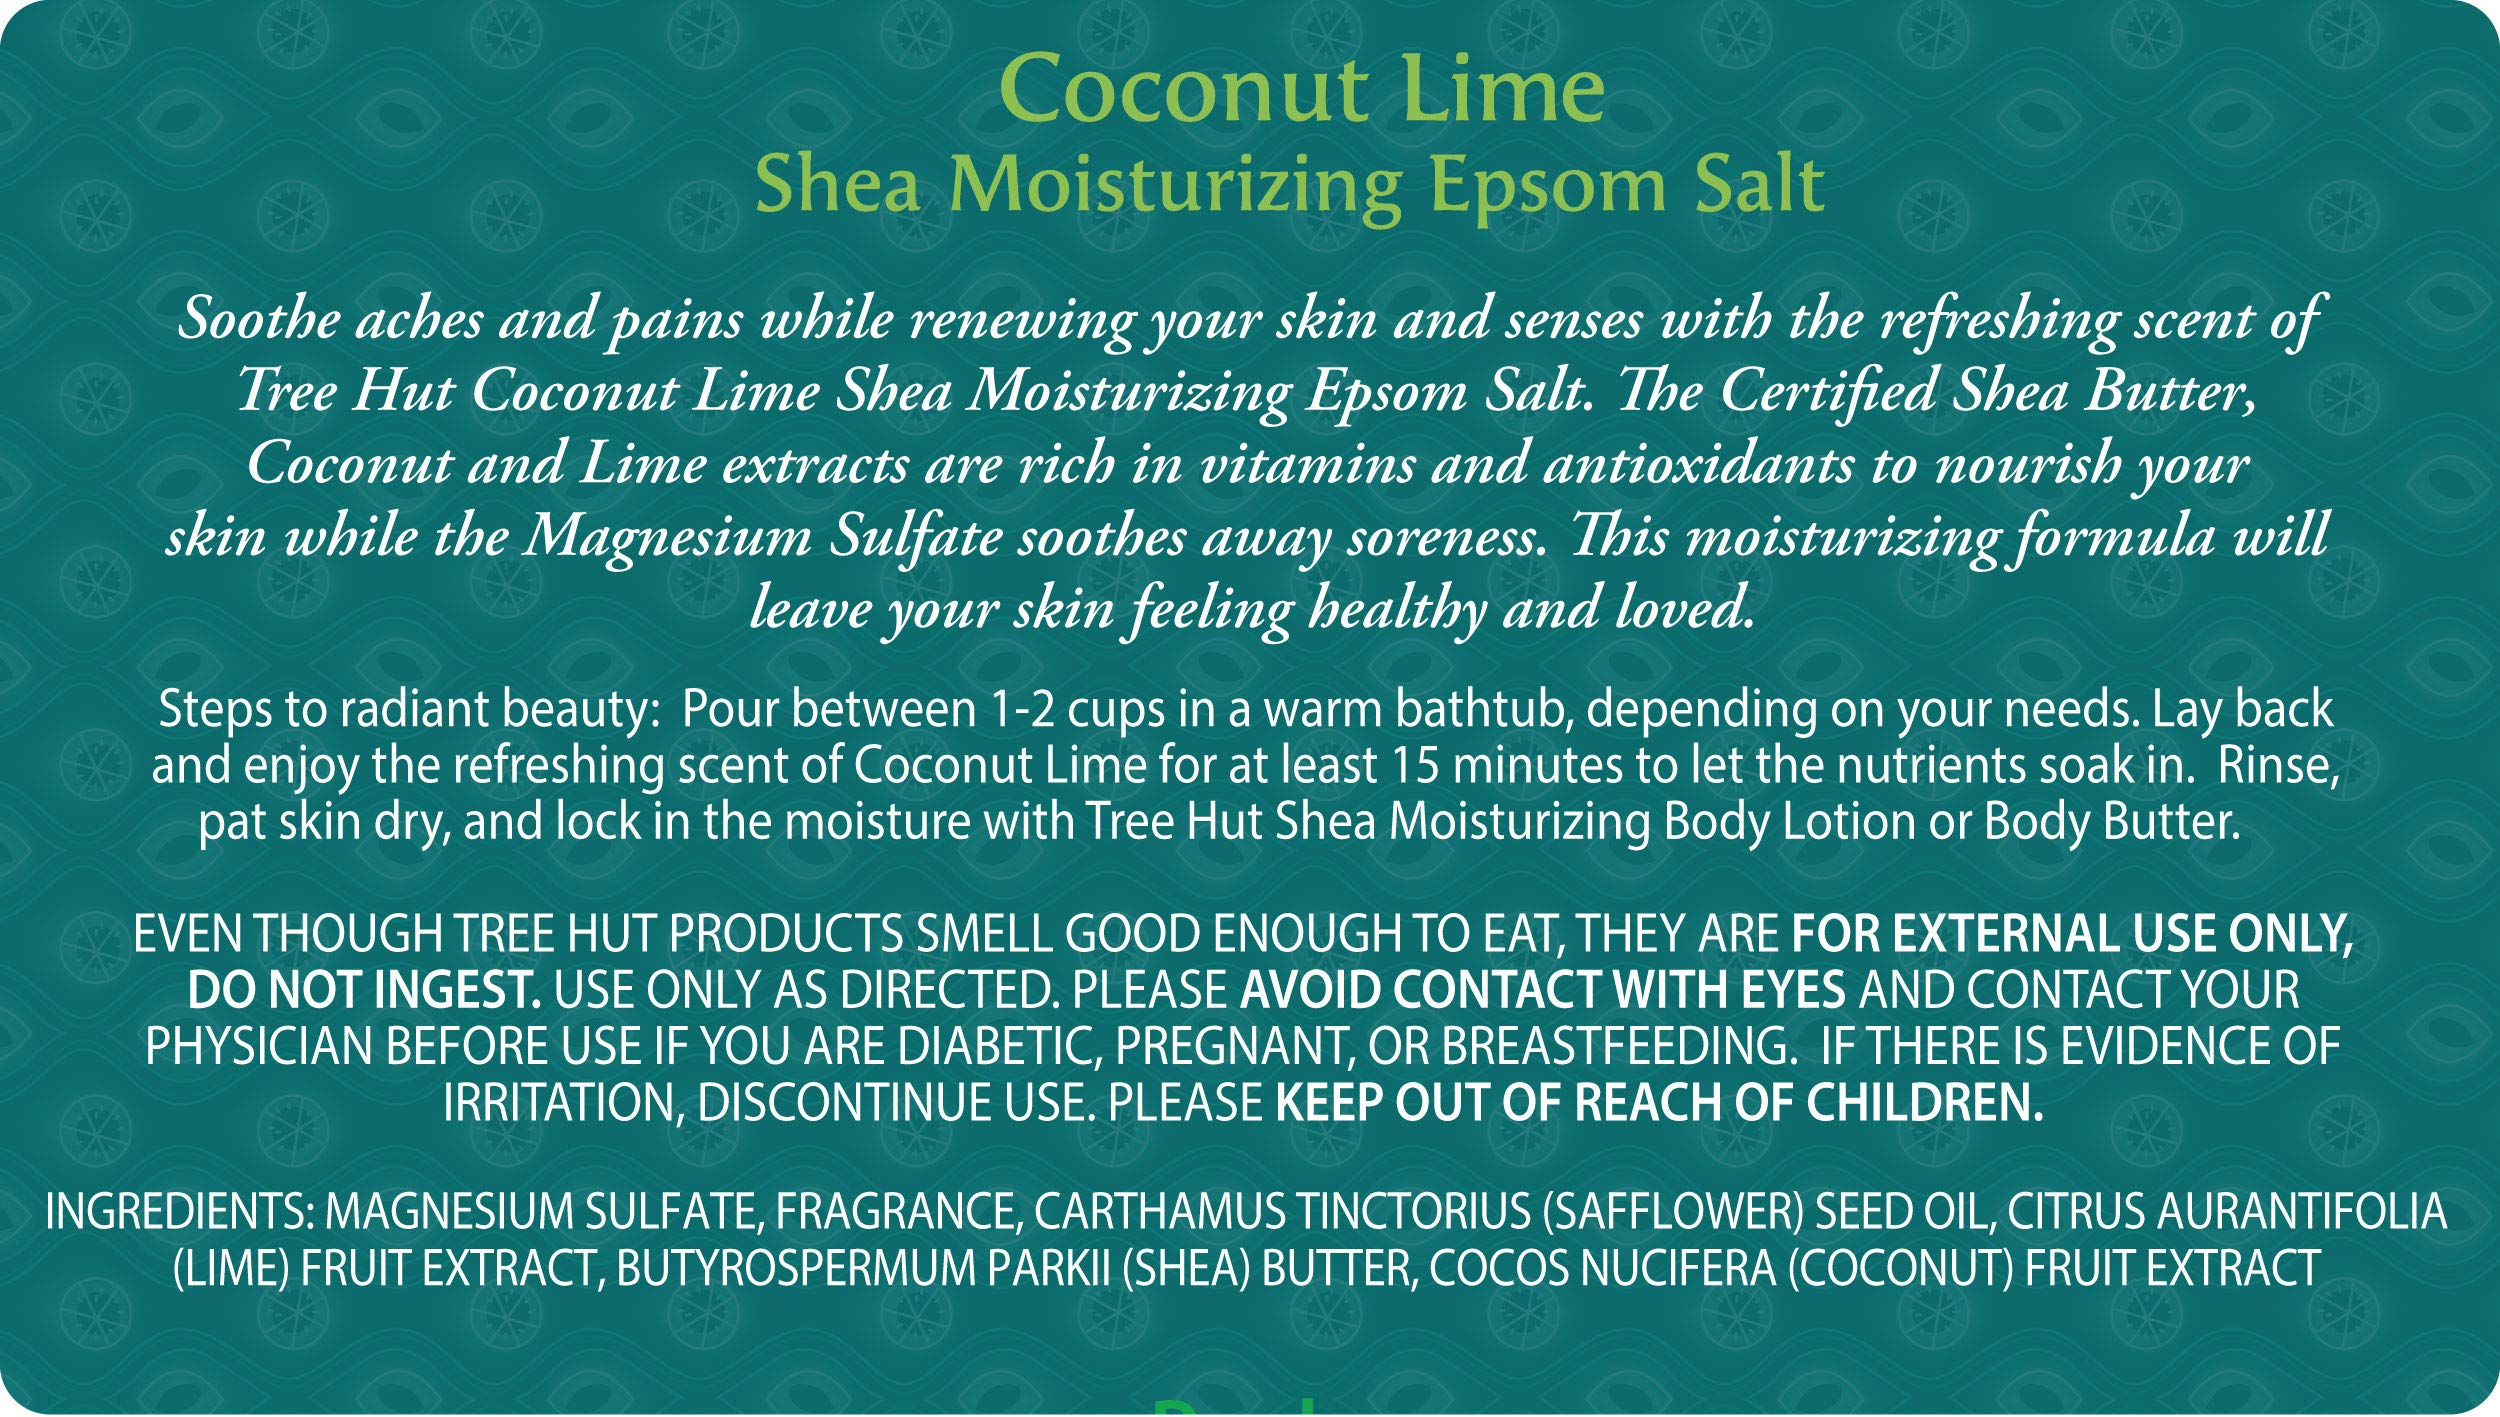 Tree Hut Shea Moisturizing Epsom Salt Coconut Lime, 3Ibs, Ultra Hydrating Epsom for Nourishing Essential Body Care by Tree Hut (Image #3)